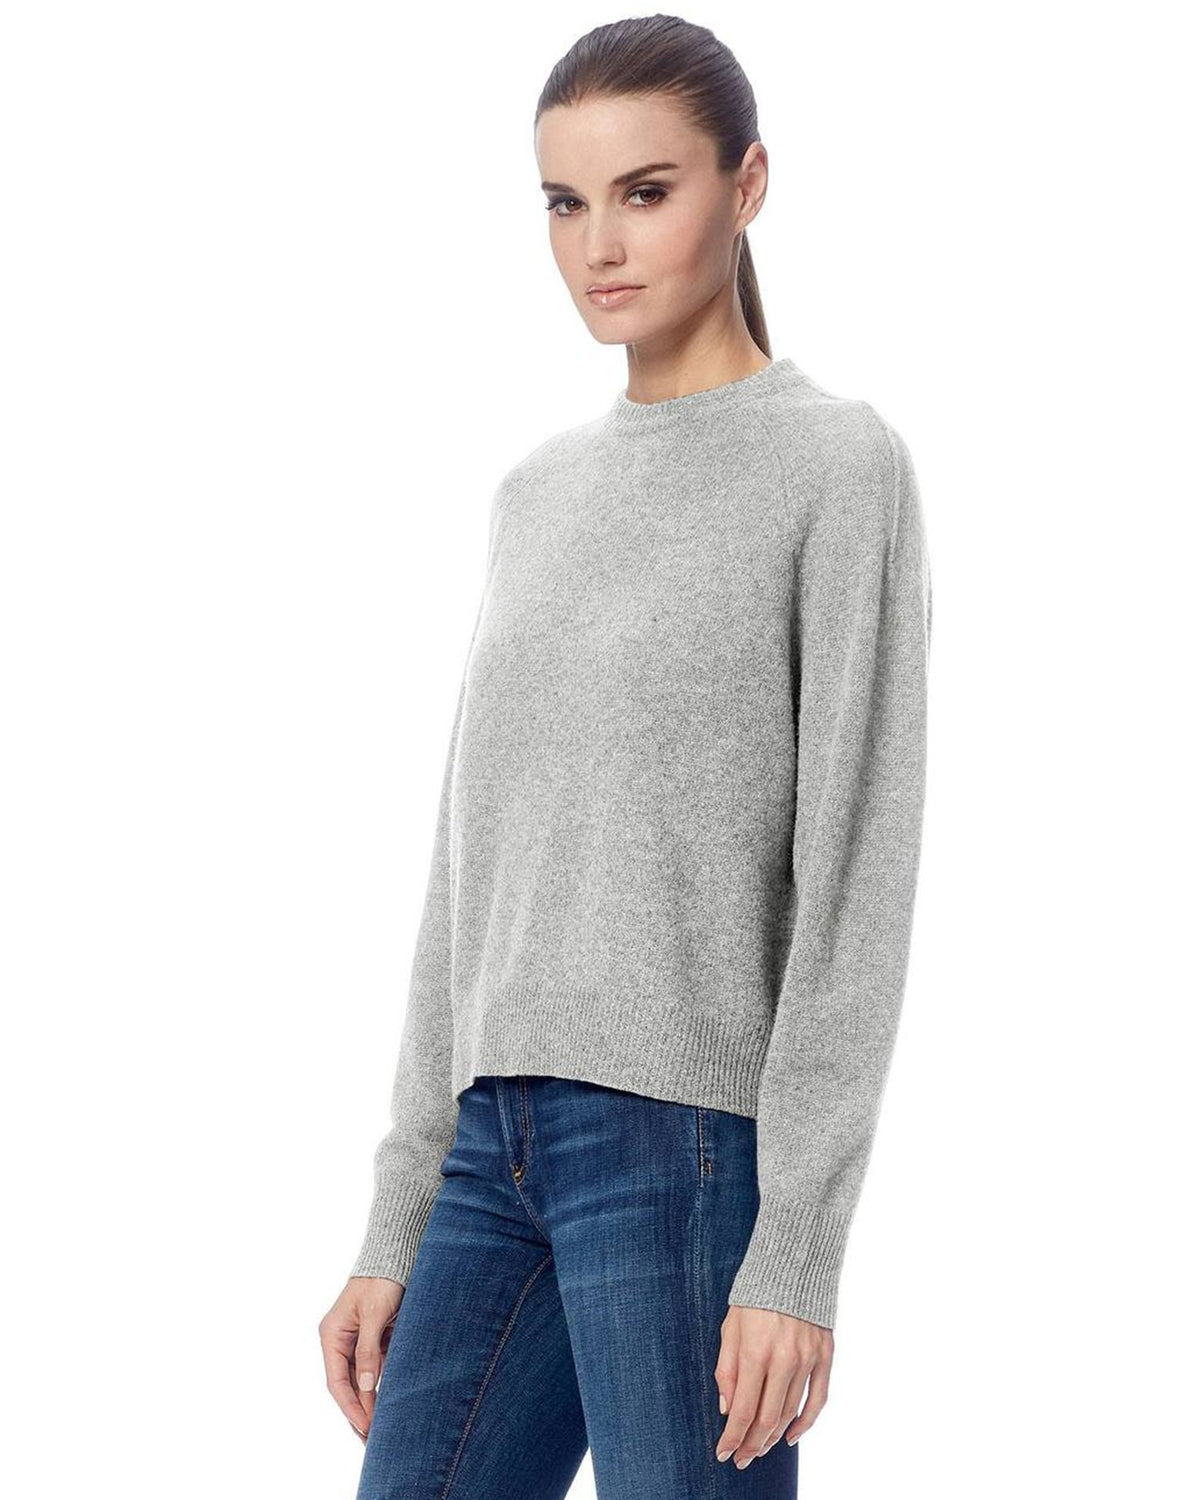 360 Cashmere Clothing Gracie Pullover Sweater in Light Heather Grey